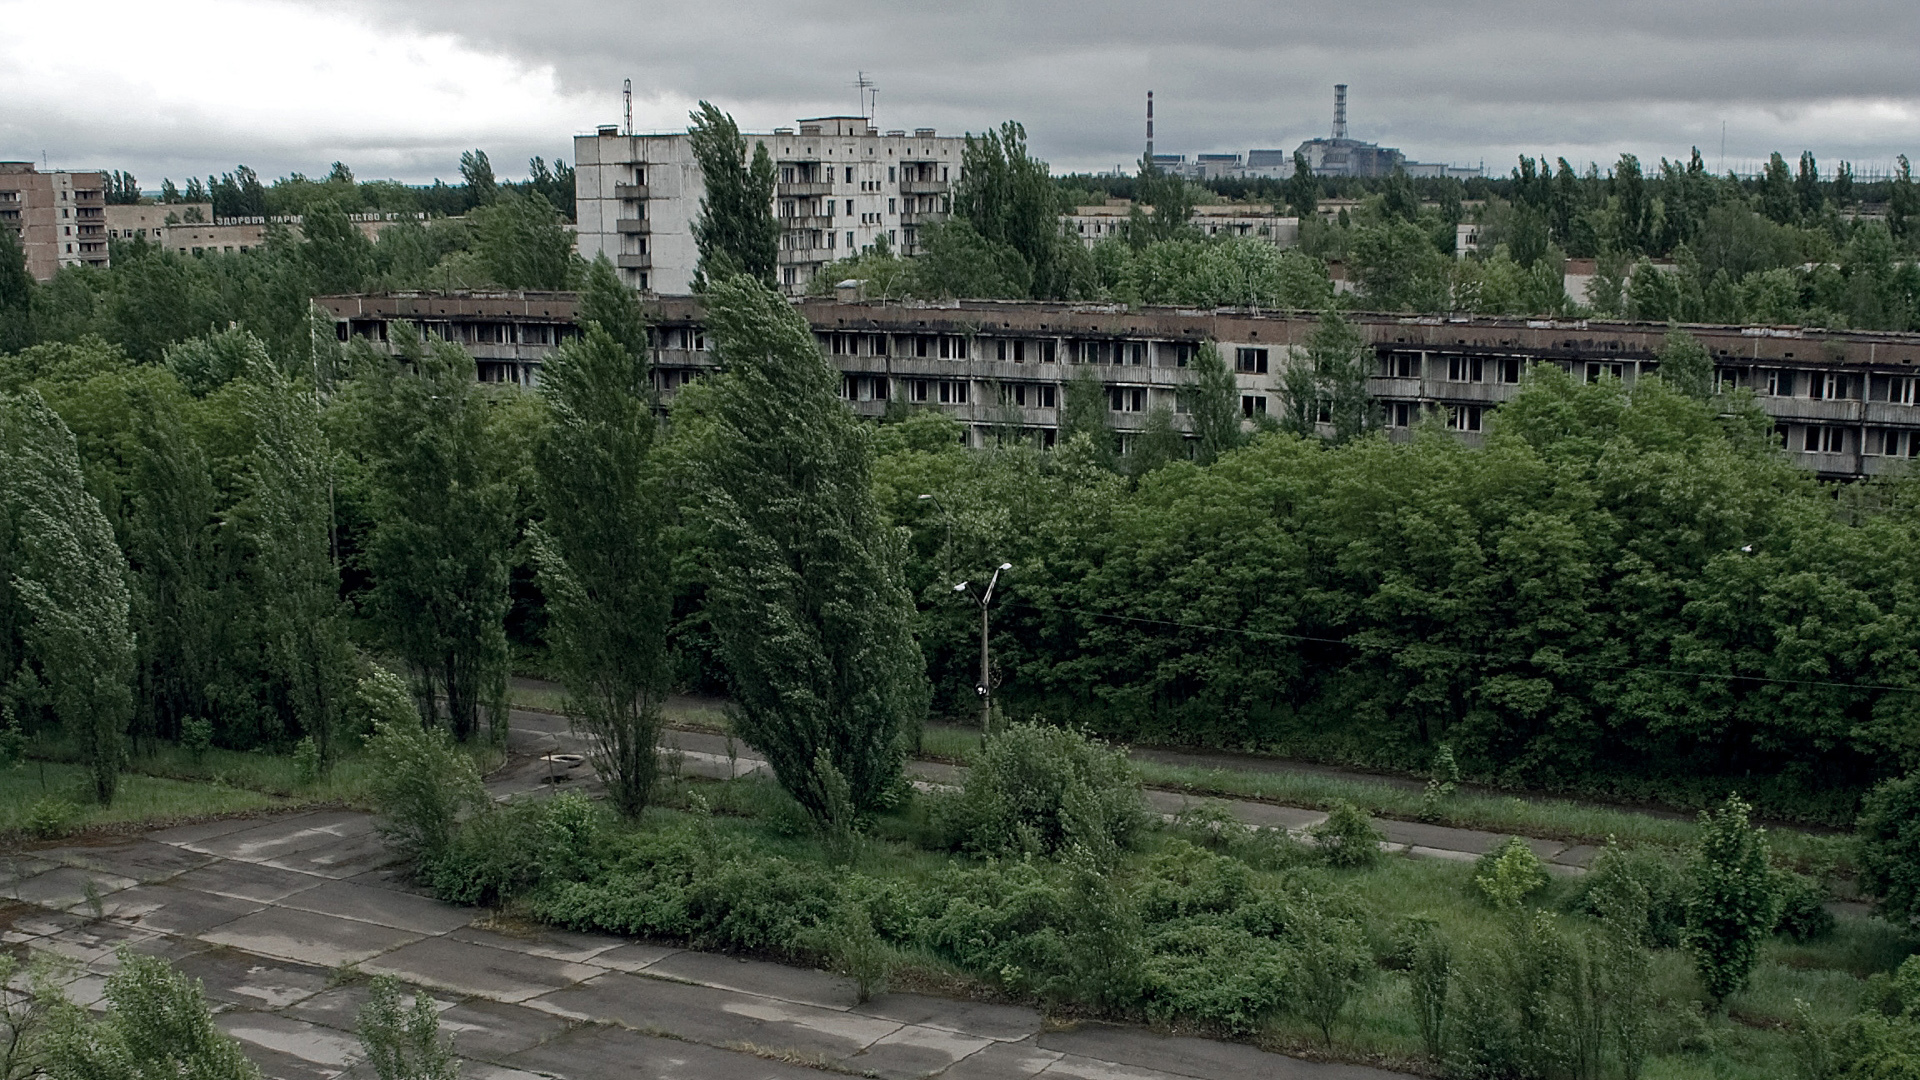 Chernobyl Landscapes ruins architecture HD Wallpaper